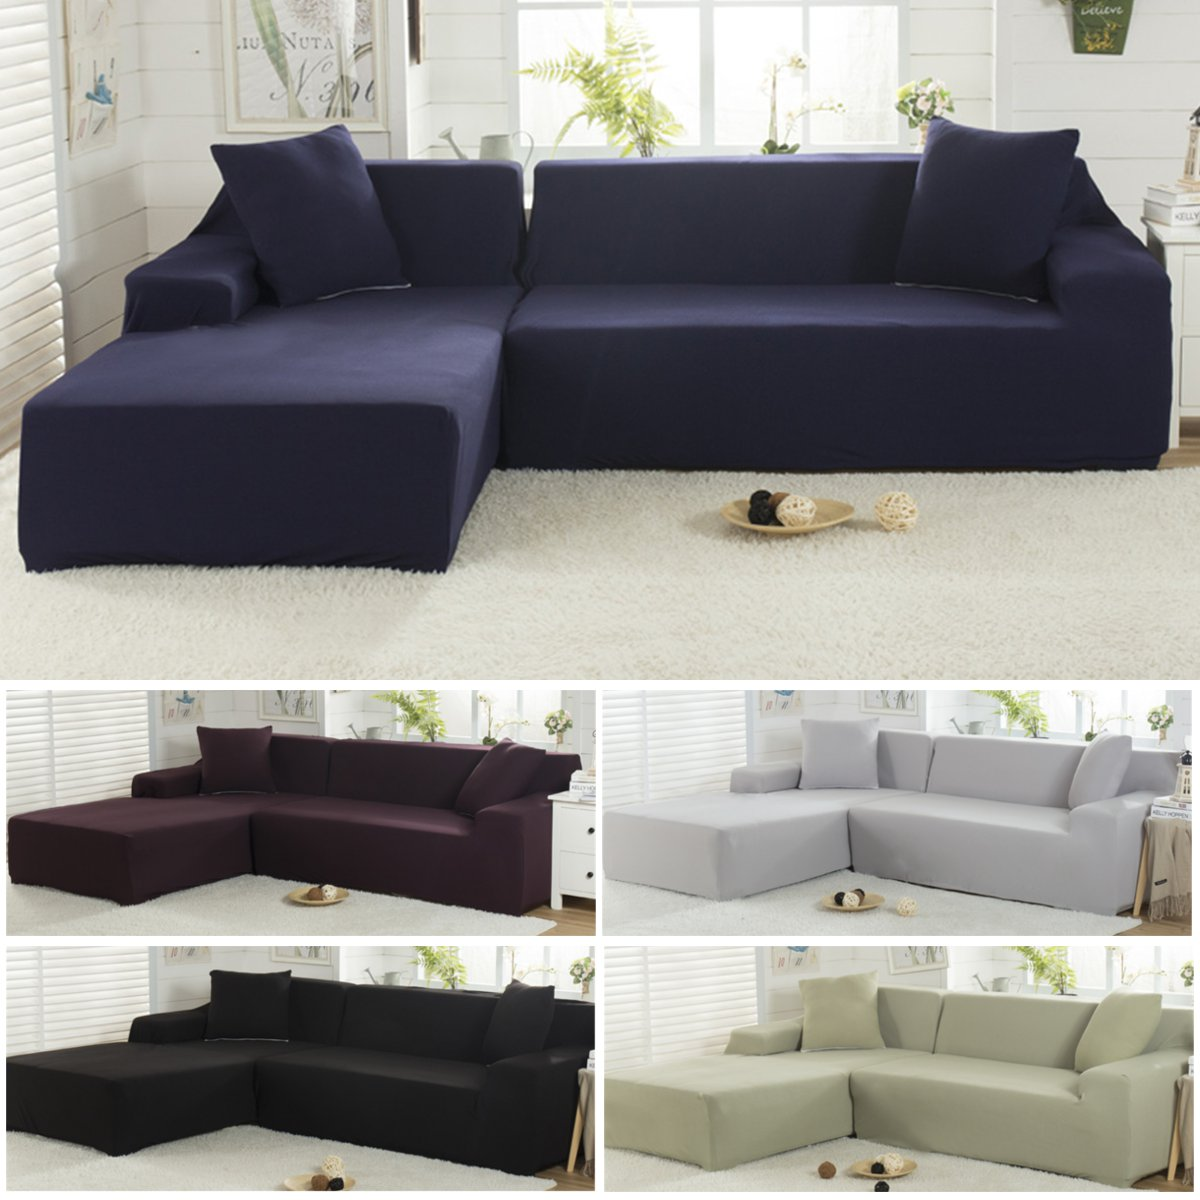 Outstanding L Shape Couch Cover Stretch Elastic Fabric Sofa Cover Pet Sectional Corner Chair Covers Ocoug Best Dining Table And Chair Ideas Images Ocougorg